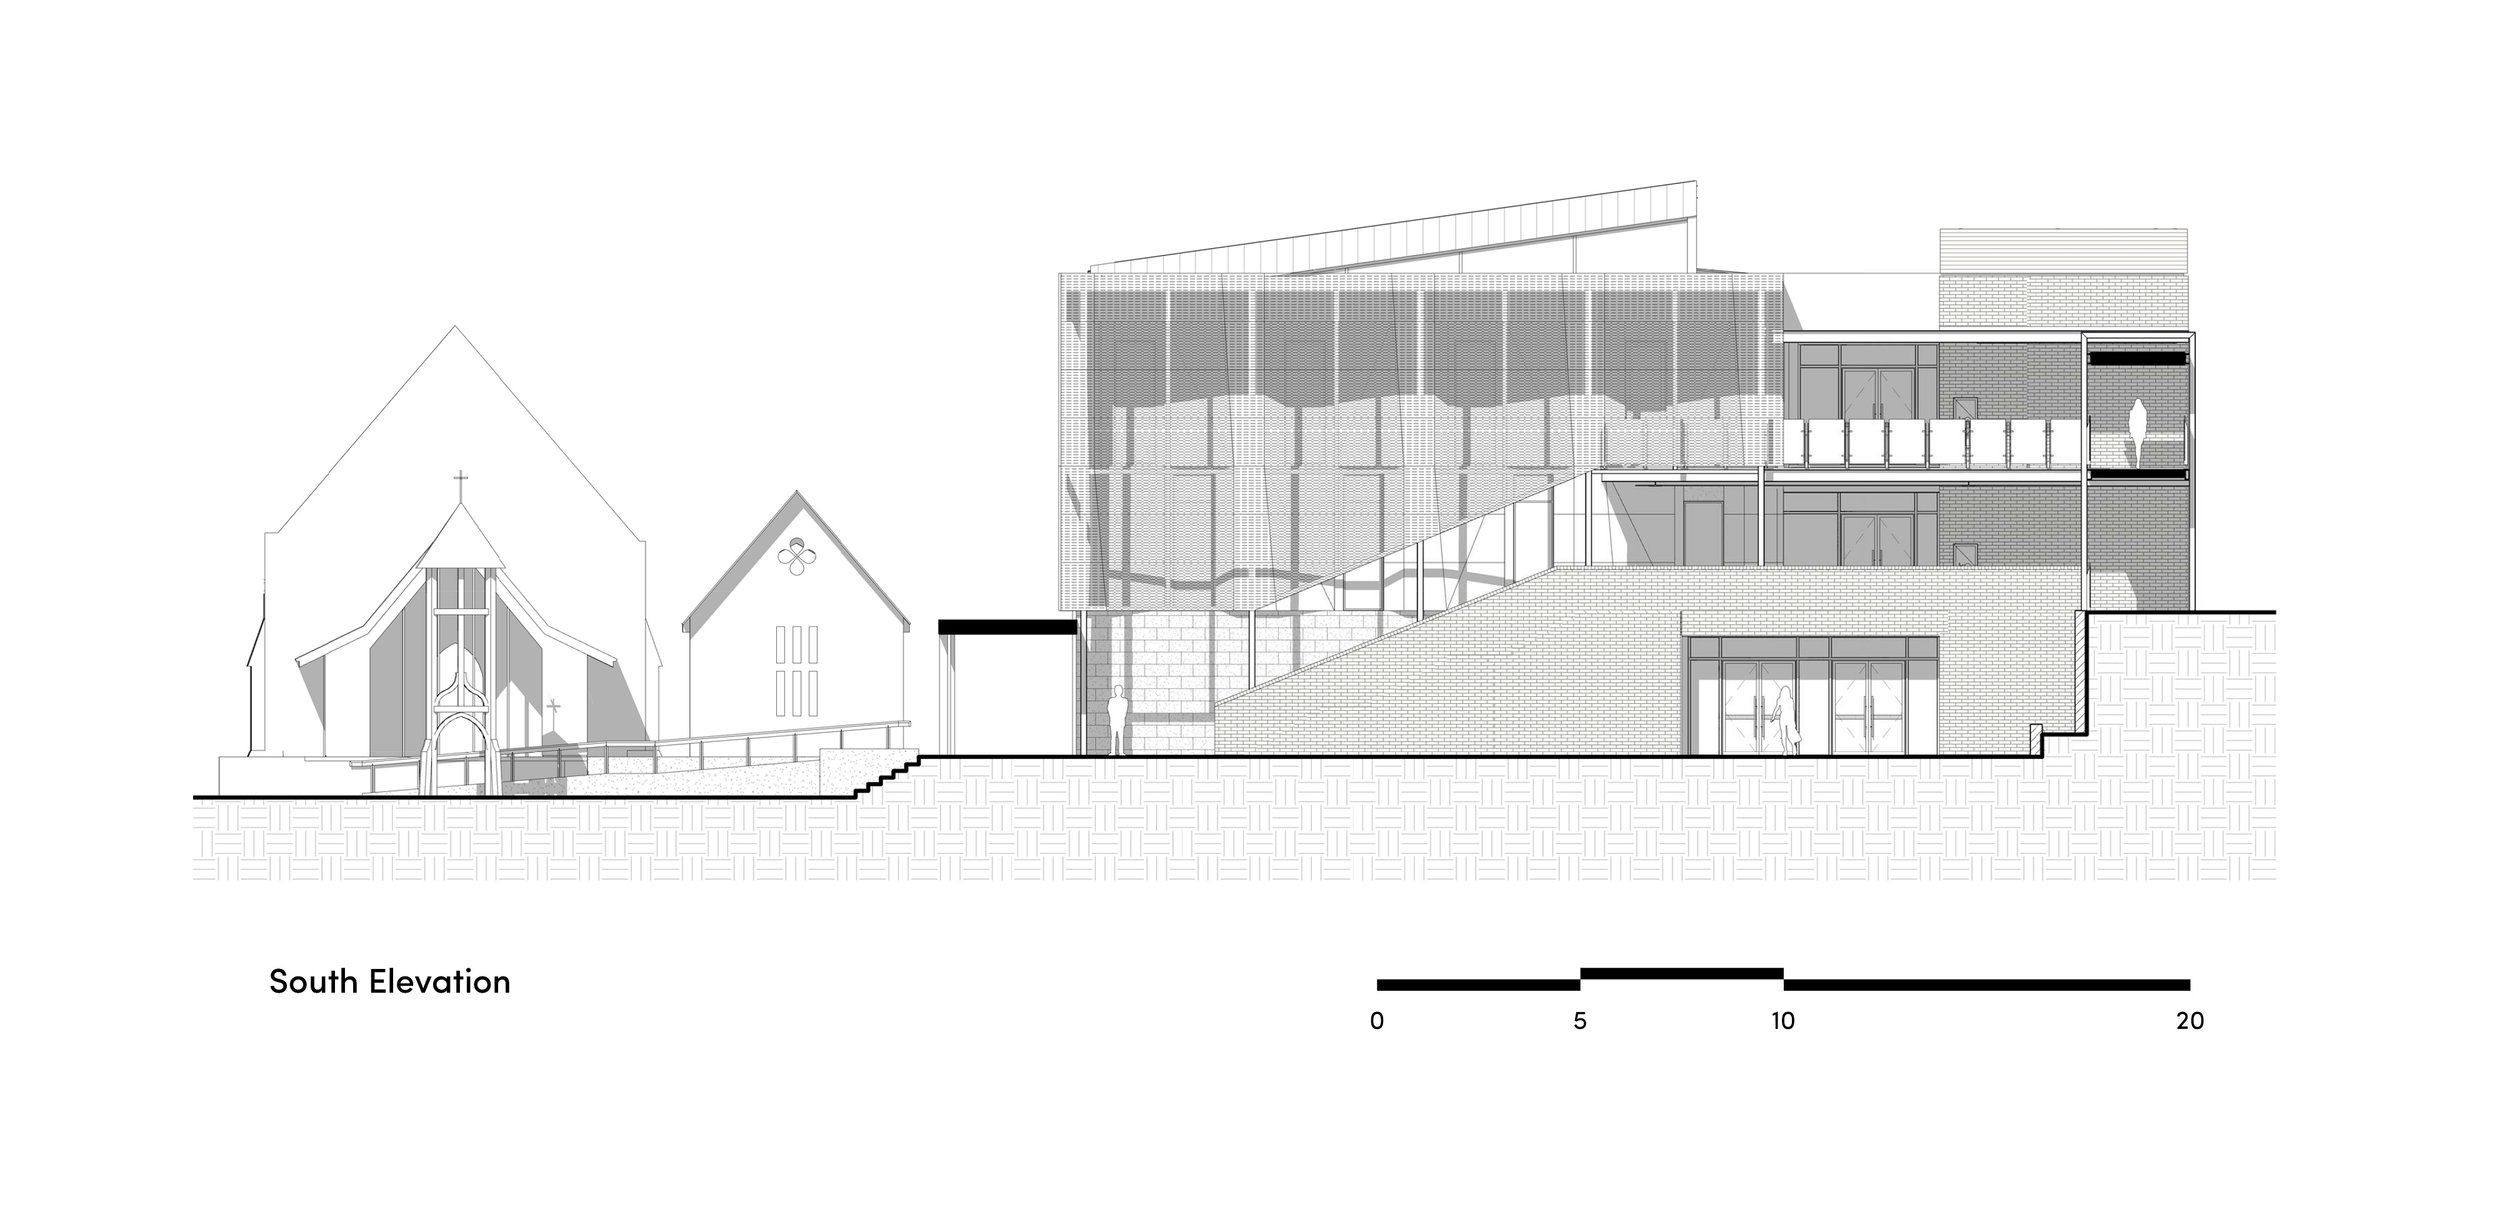 07_South Elevation.jpg